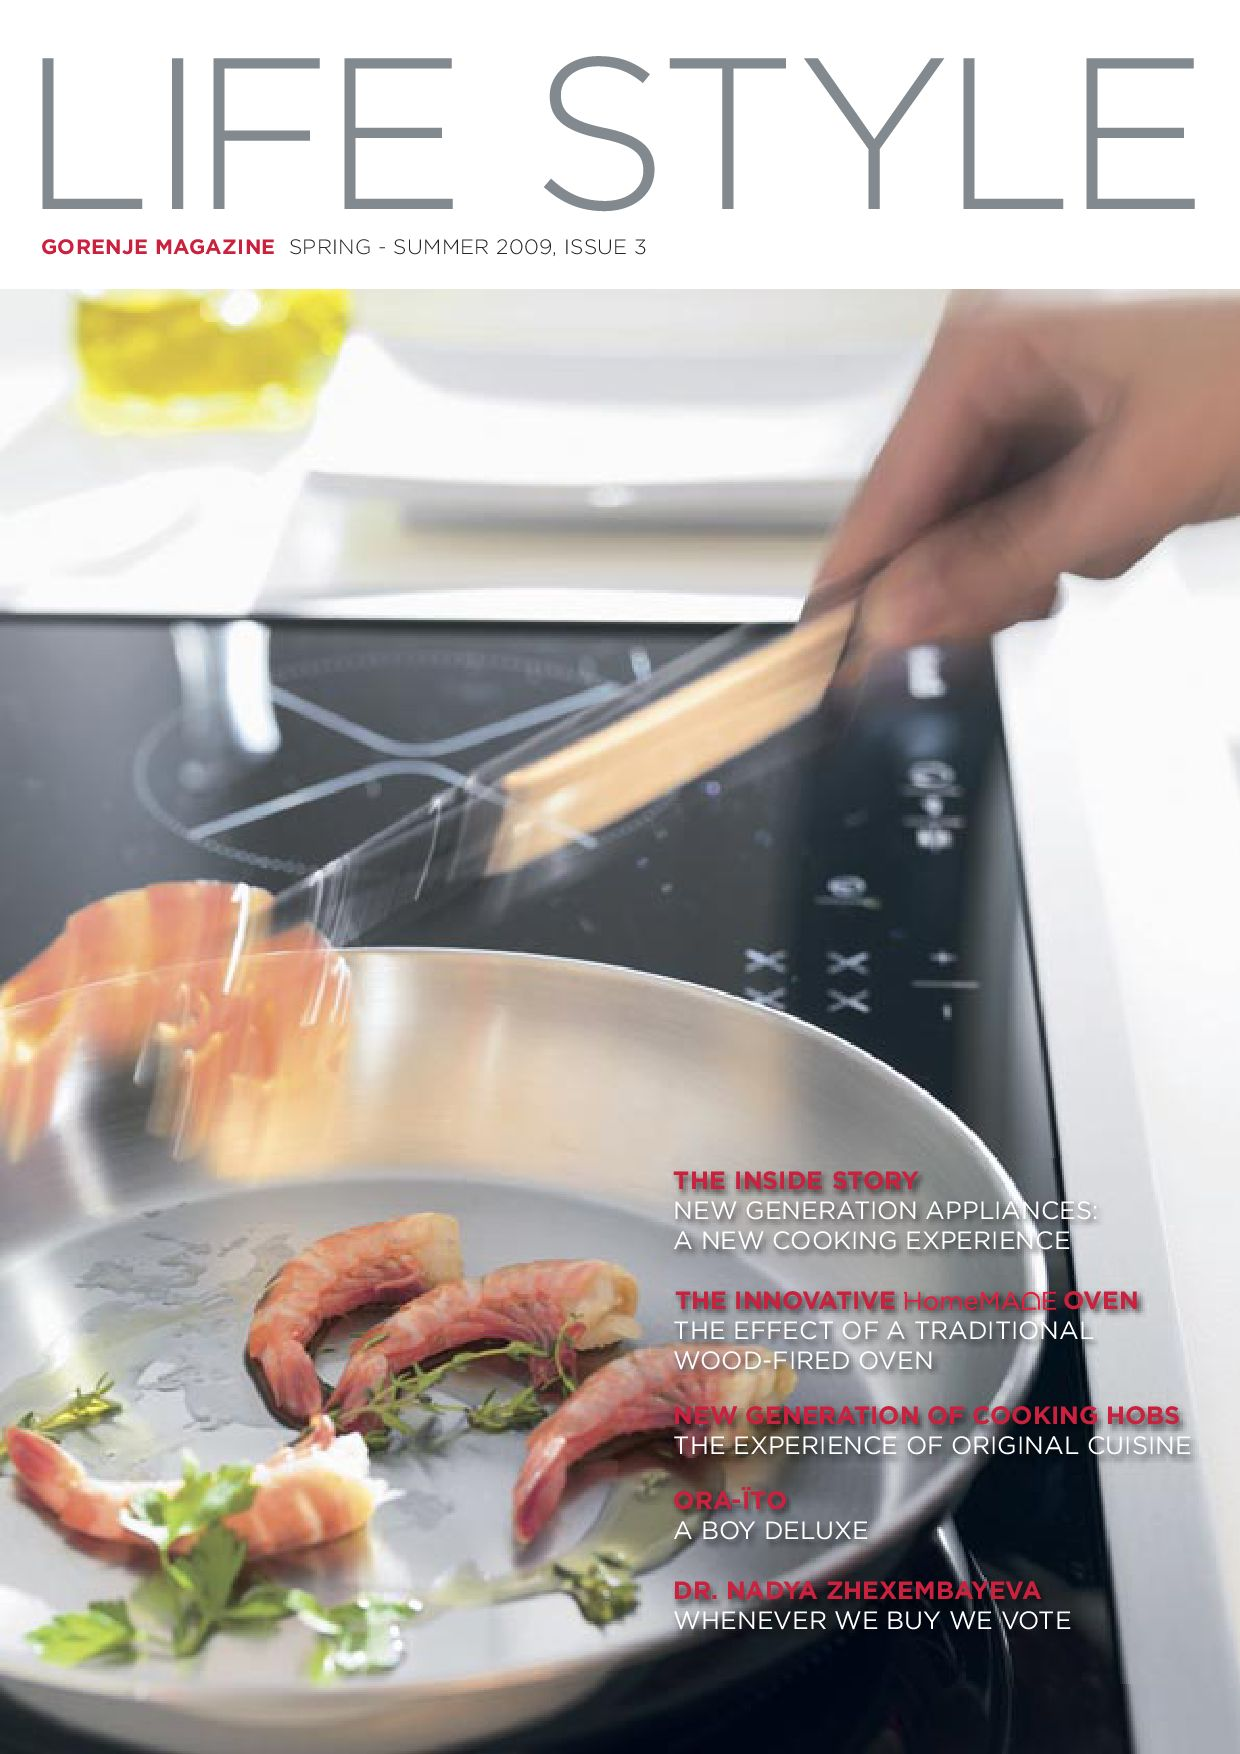 Miracle-electric oven for unusual dishes